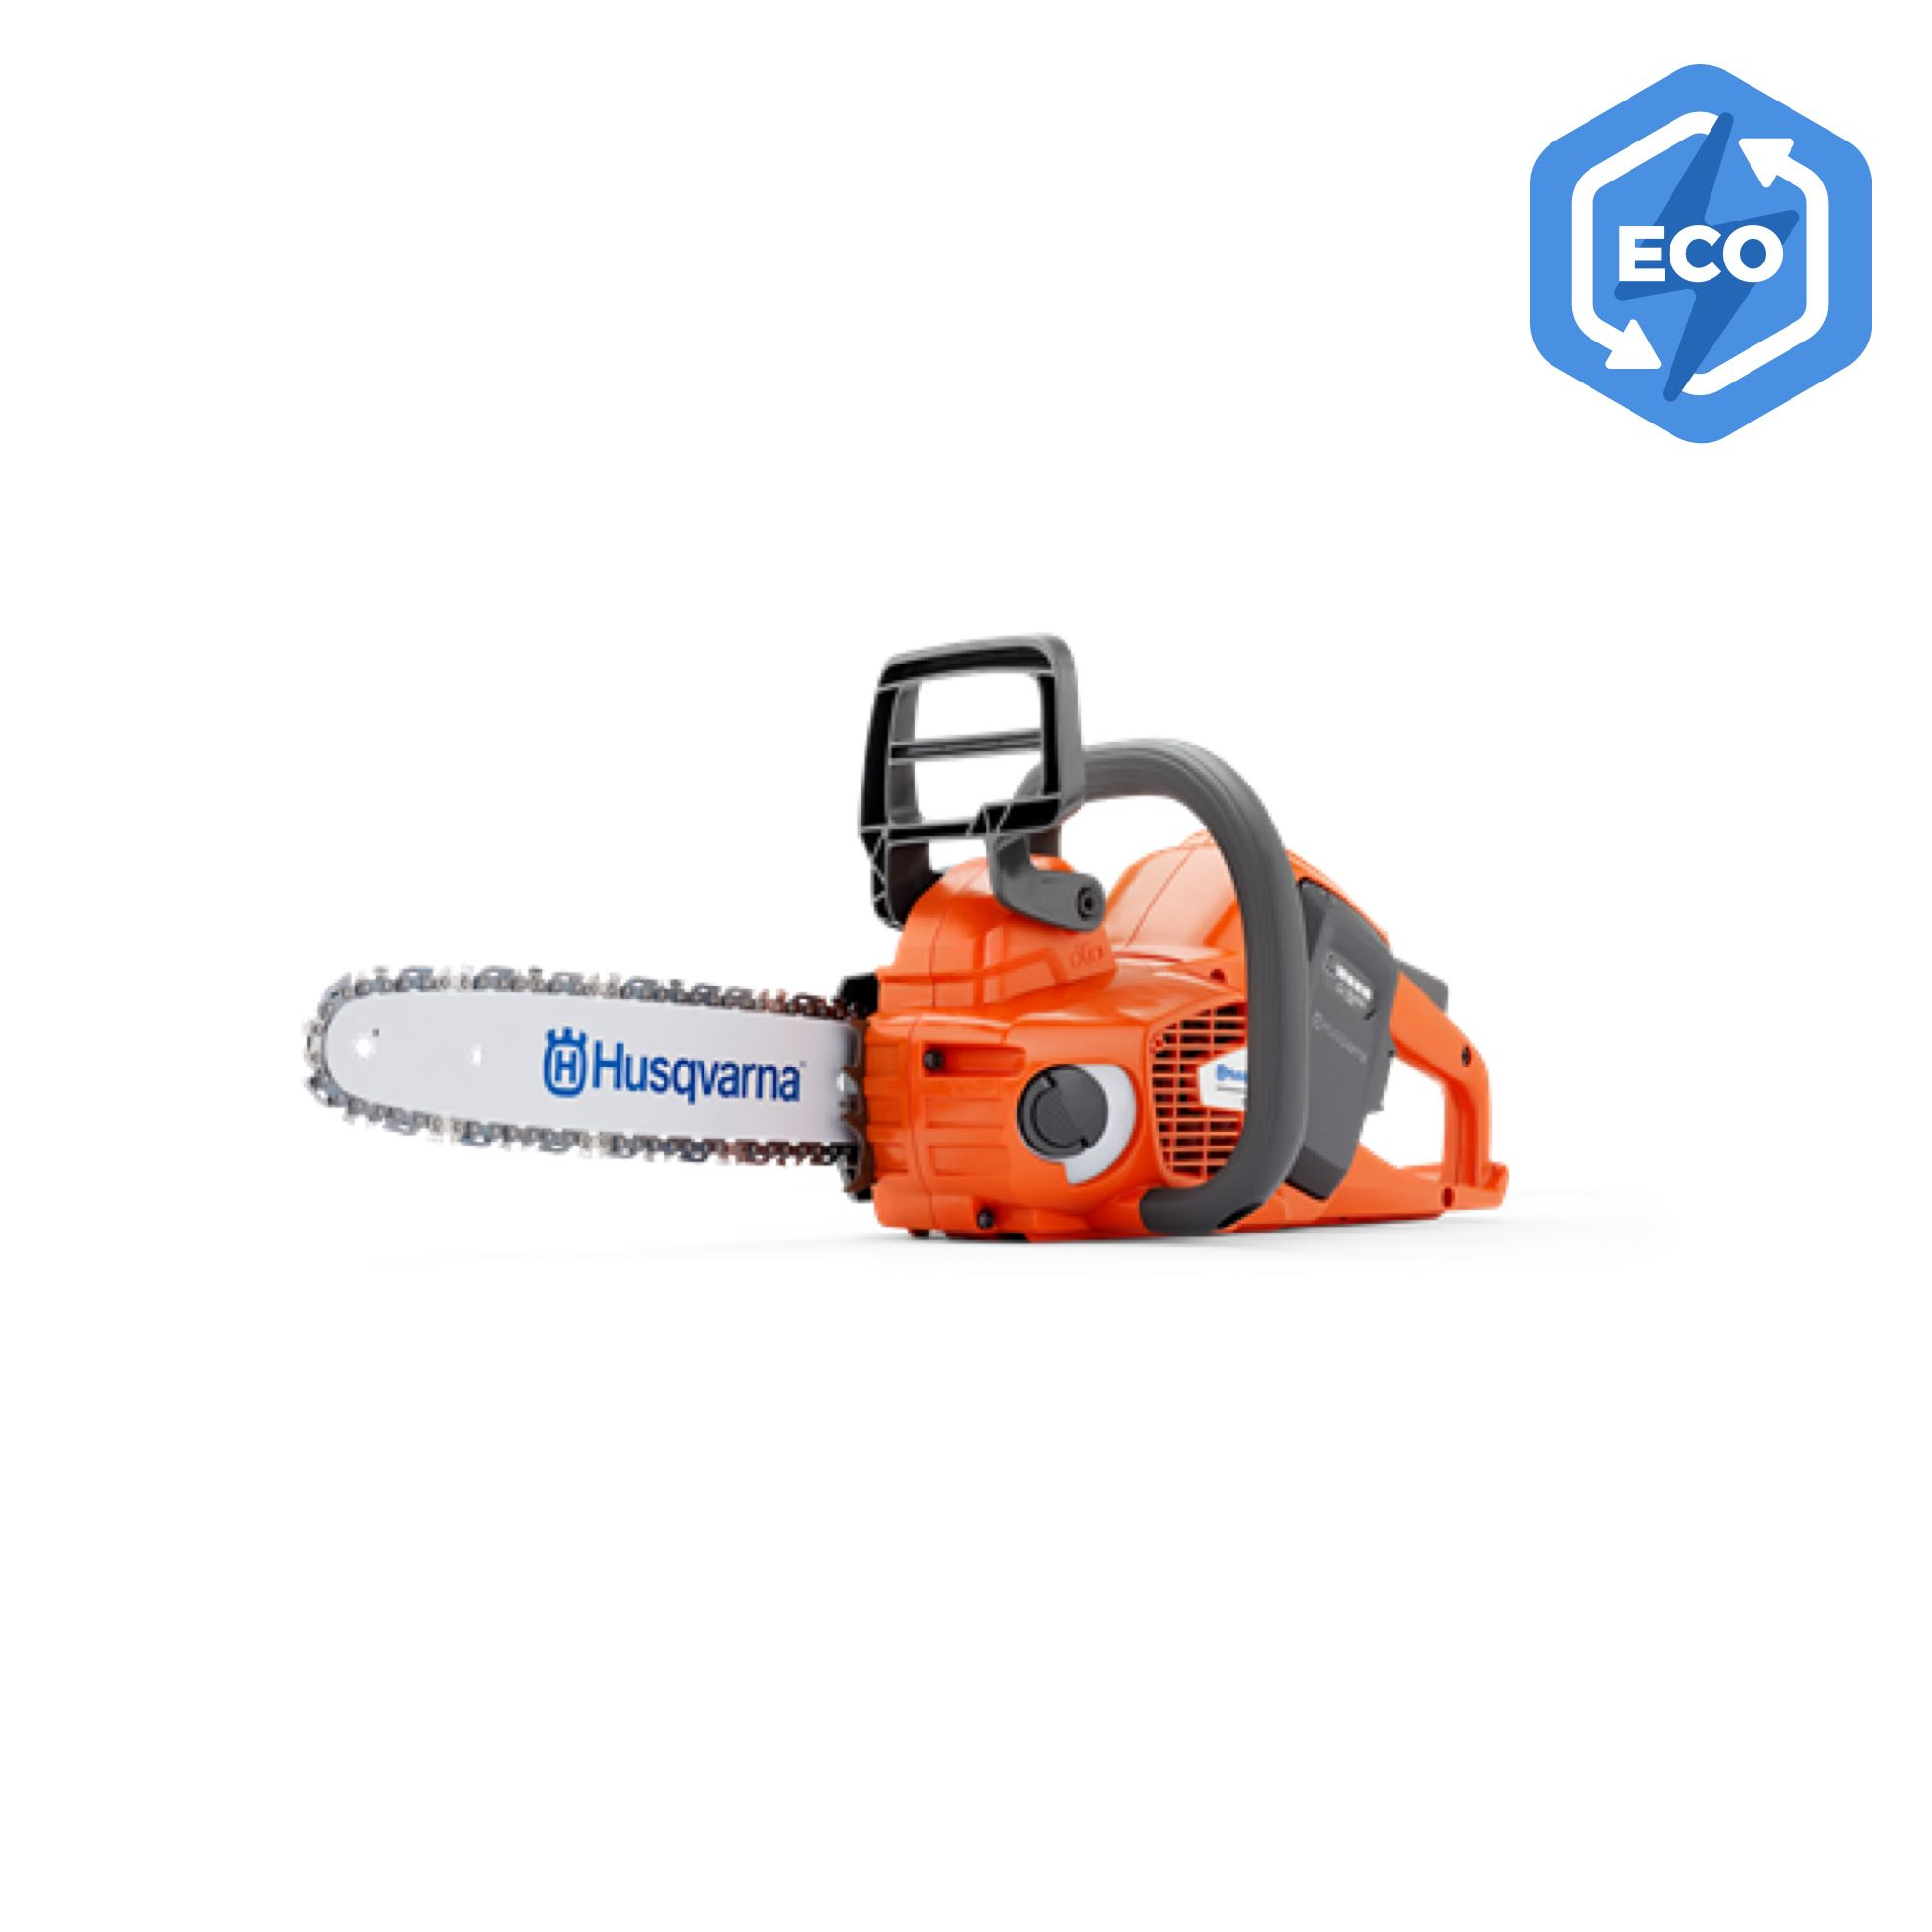 Husqvarna 535i XP Chainsaw